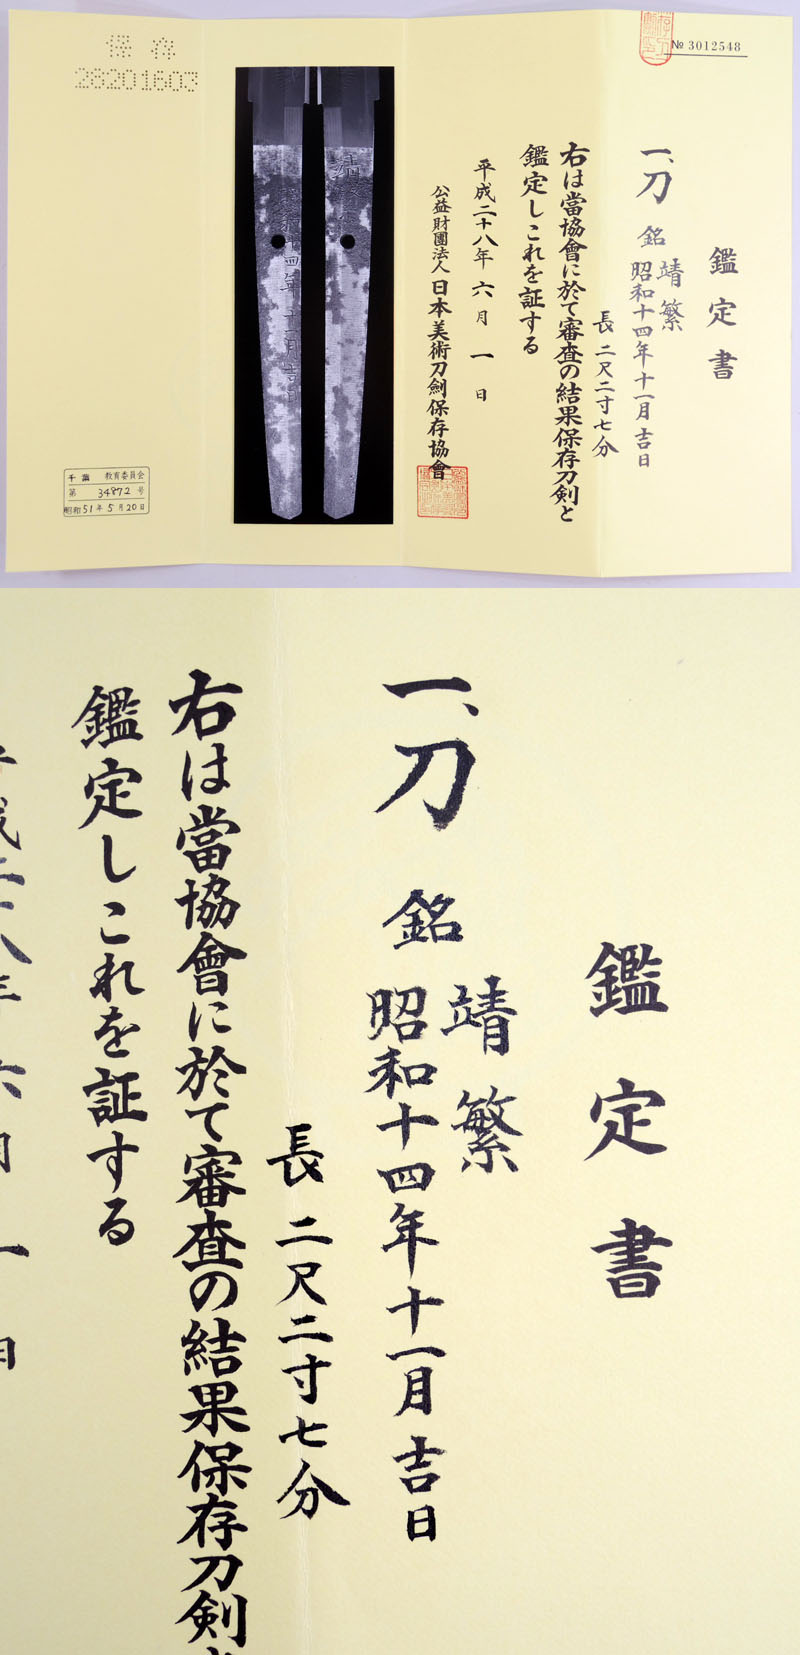 靖繁 (阿部 靖繁) Picture of Certificate